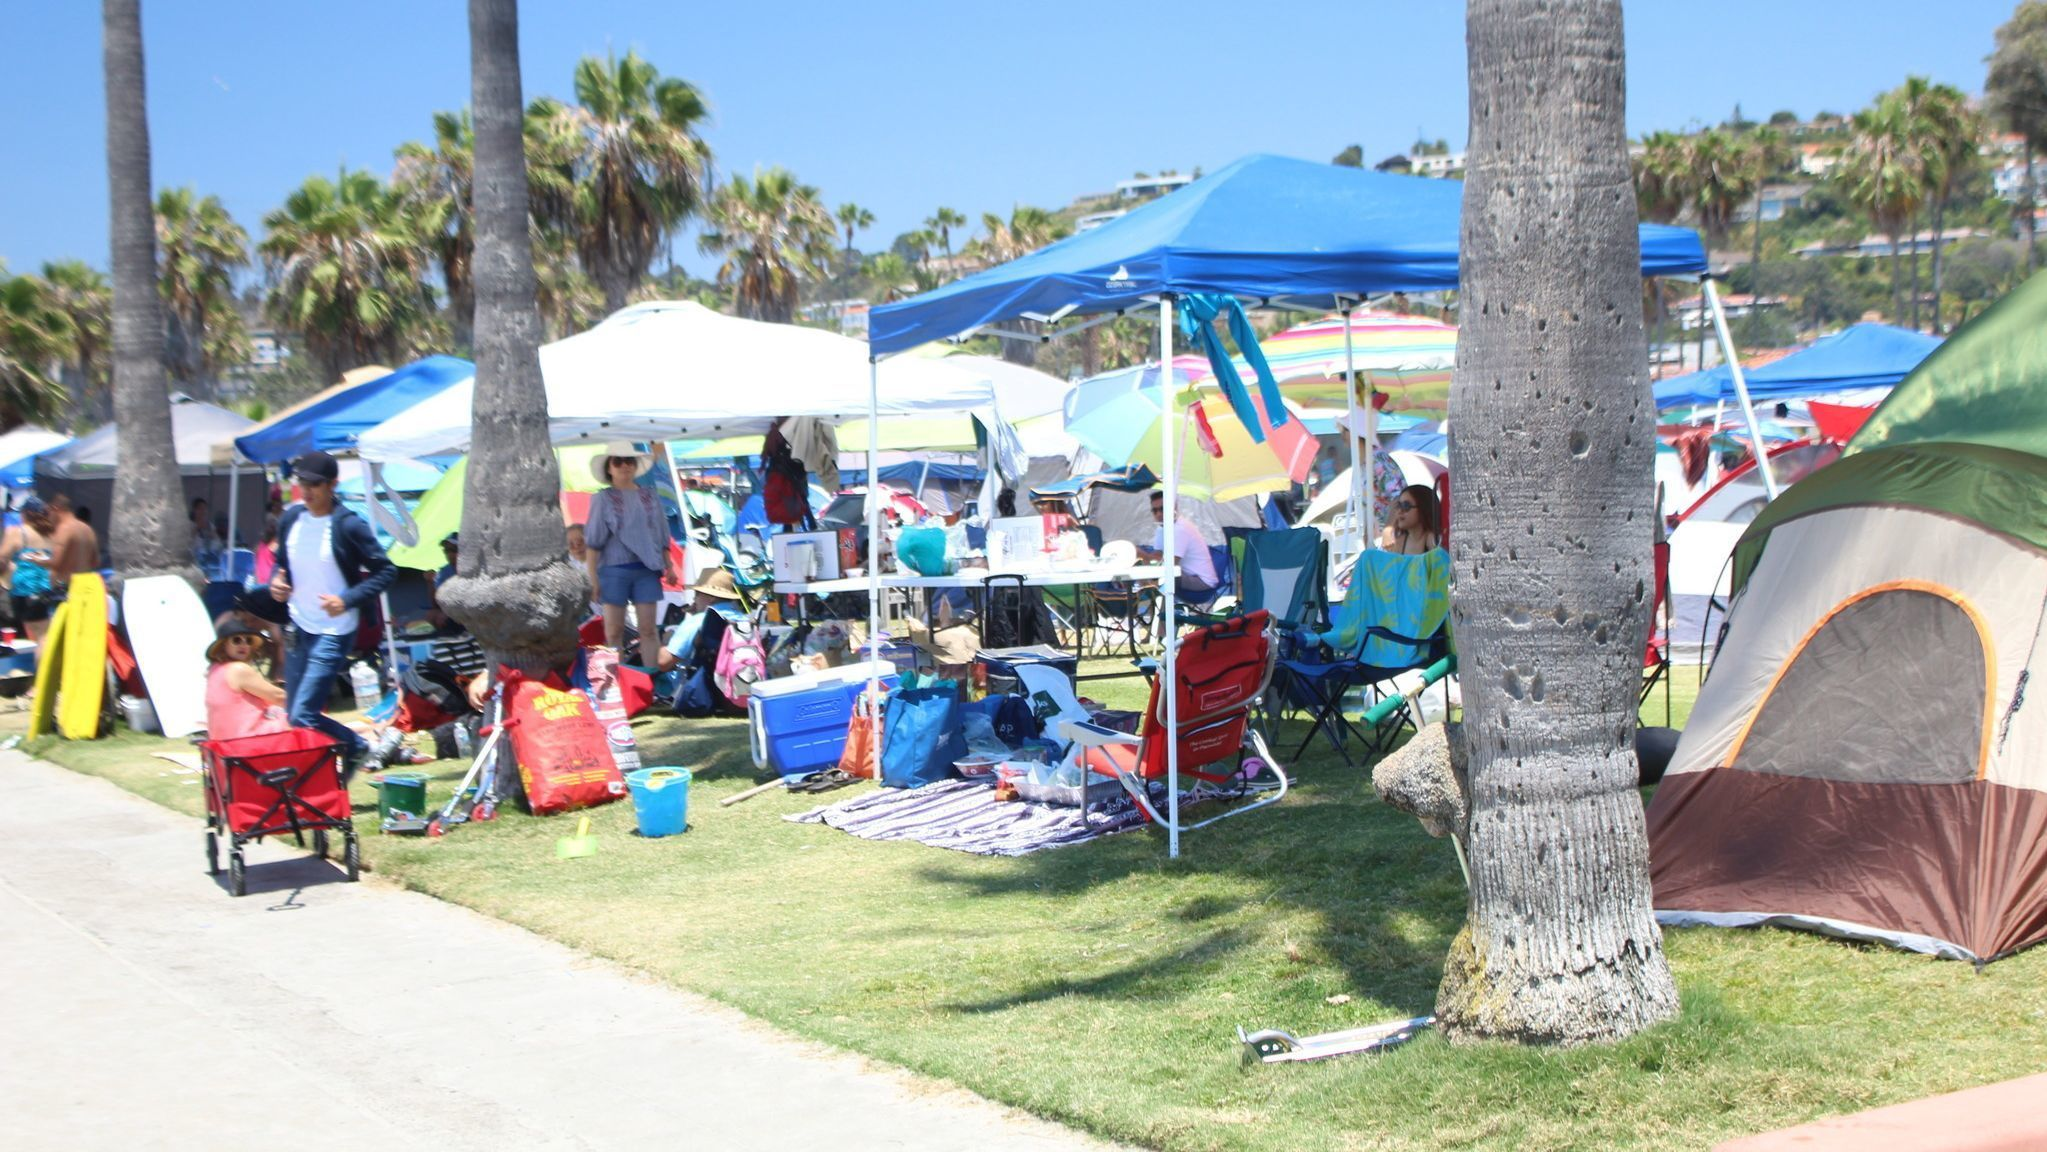 Approximately 200 tents packed Kellogg Park on July 4.